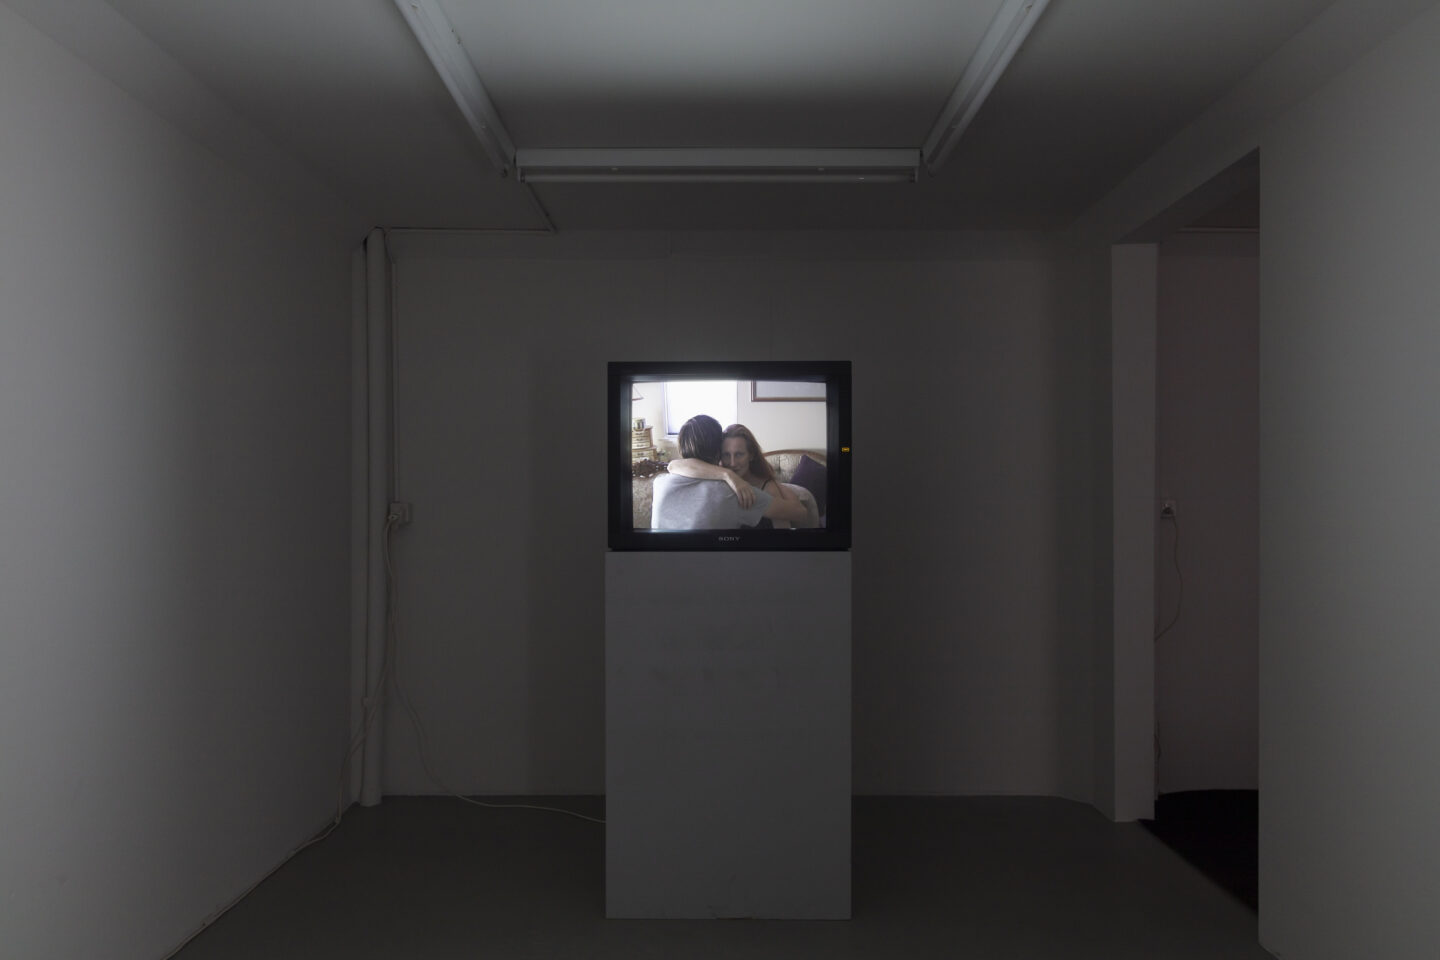 Exhibition View Groupshow «On Fire – Vulnerable Footage ; view on Leigh Ledare, Shoulder, The Gift, The Model (all 2007)» at SALTS, Birsefelden, Basel, 2019 / Photo: Gunnar Meier / Courtesy: the artist, Basler Dokumentartage and SALTS